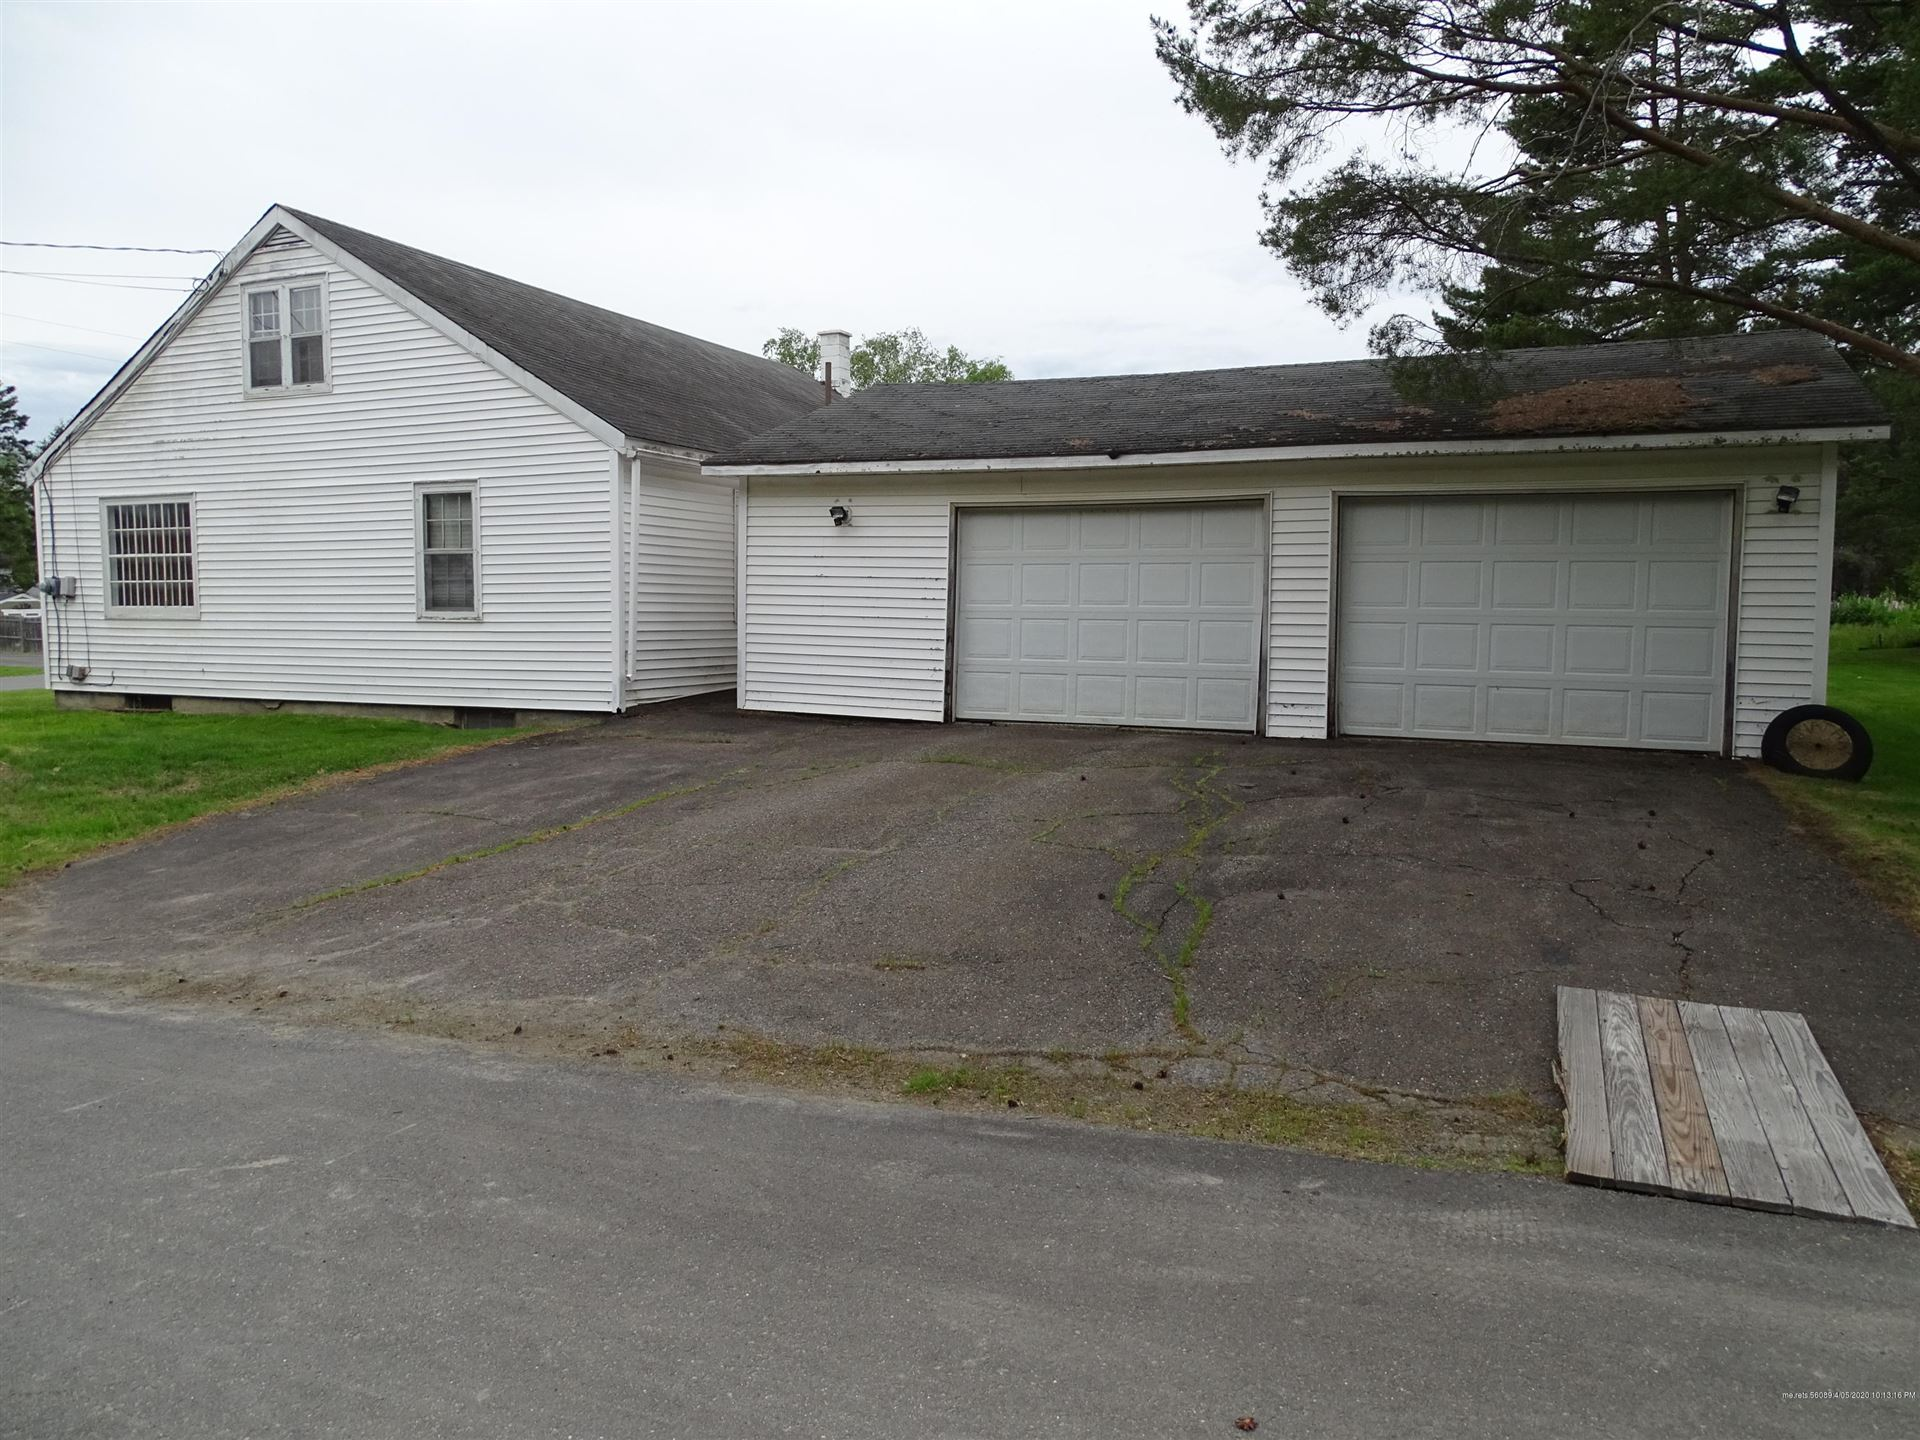 Photo of 1 Clover Street, Caribou, ME 04736 (MLS # 1448866)